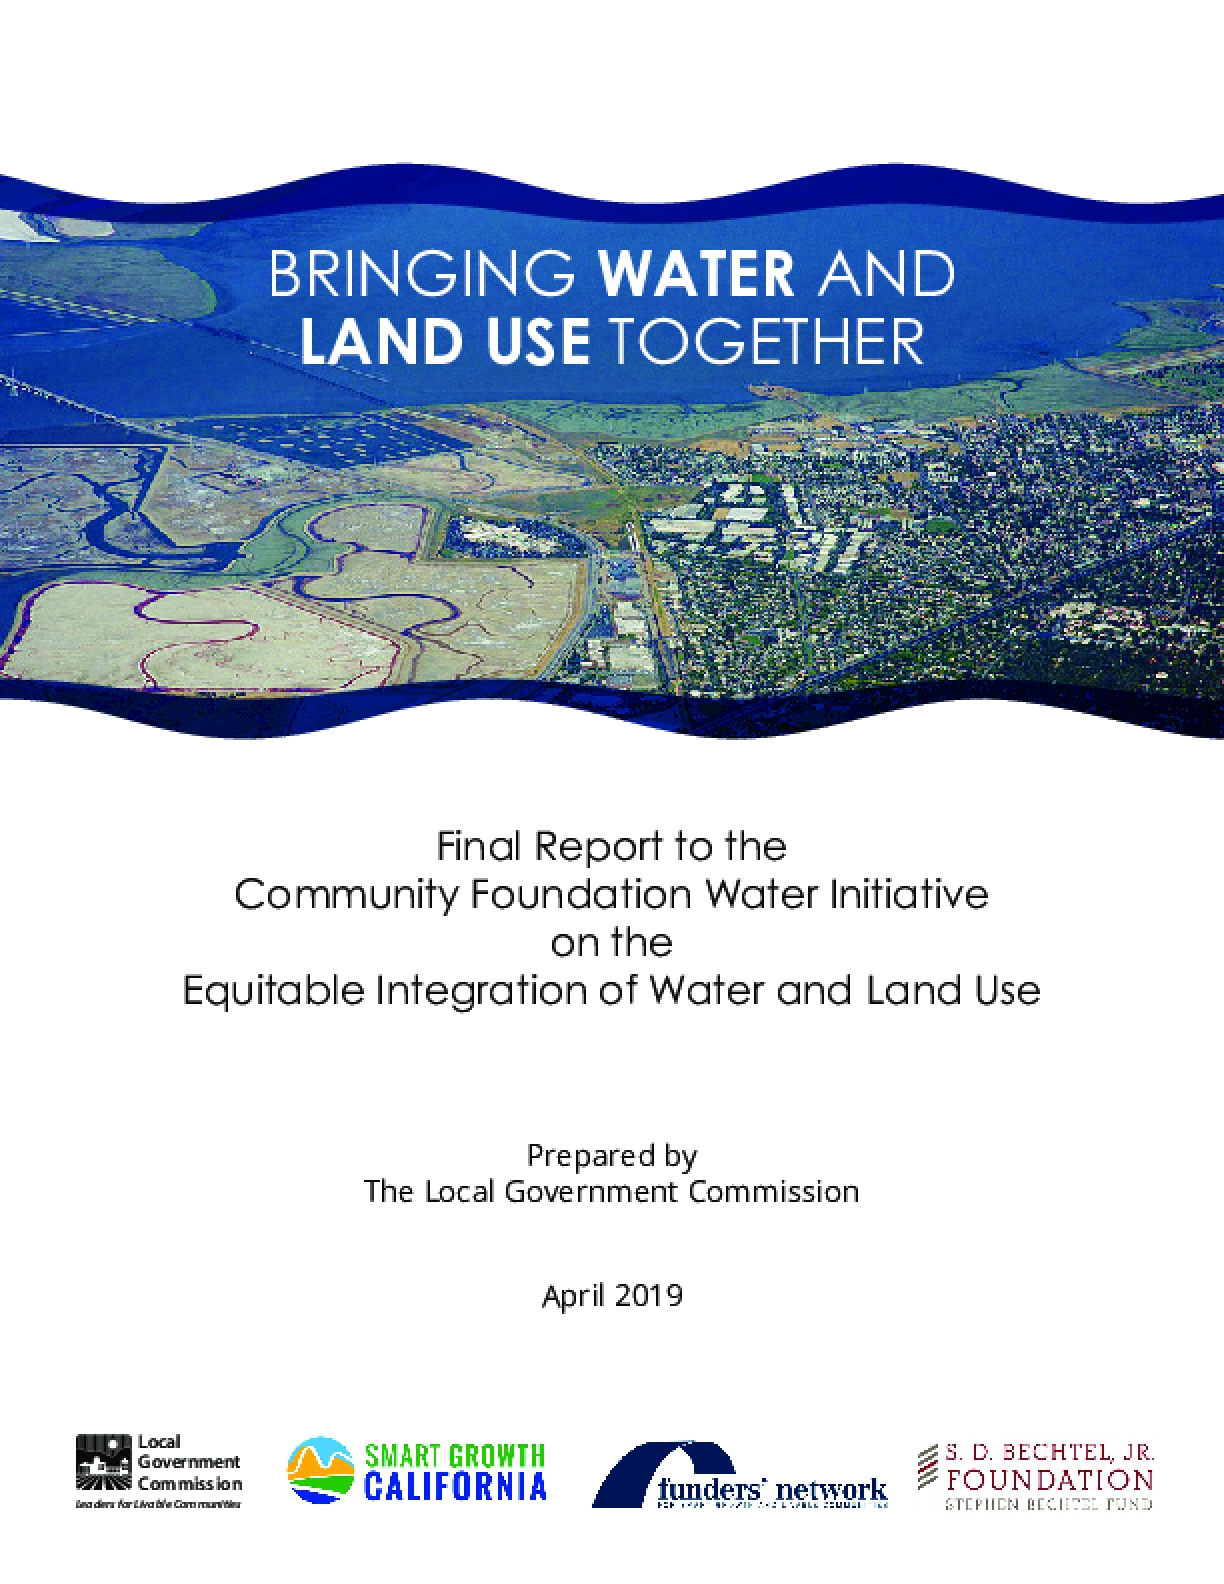 Bringing Water and Land Use Together: Final Report to the Community Foundation Water Initiative on the Equitable Integration of Water and Land Use